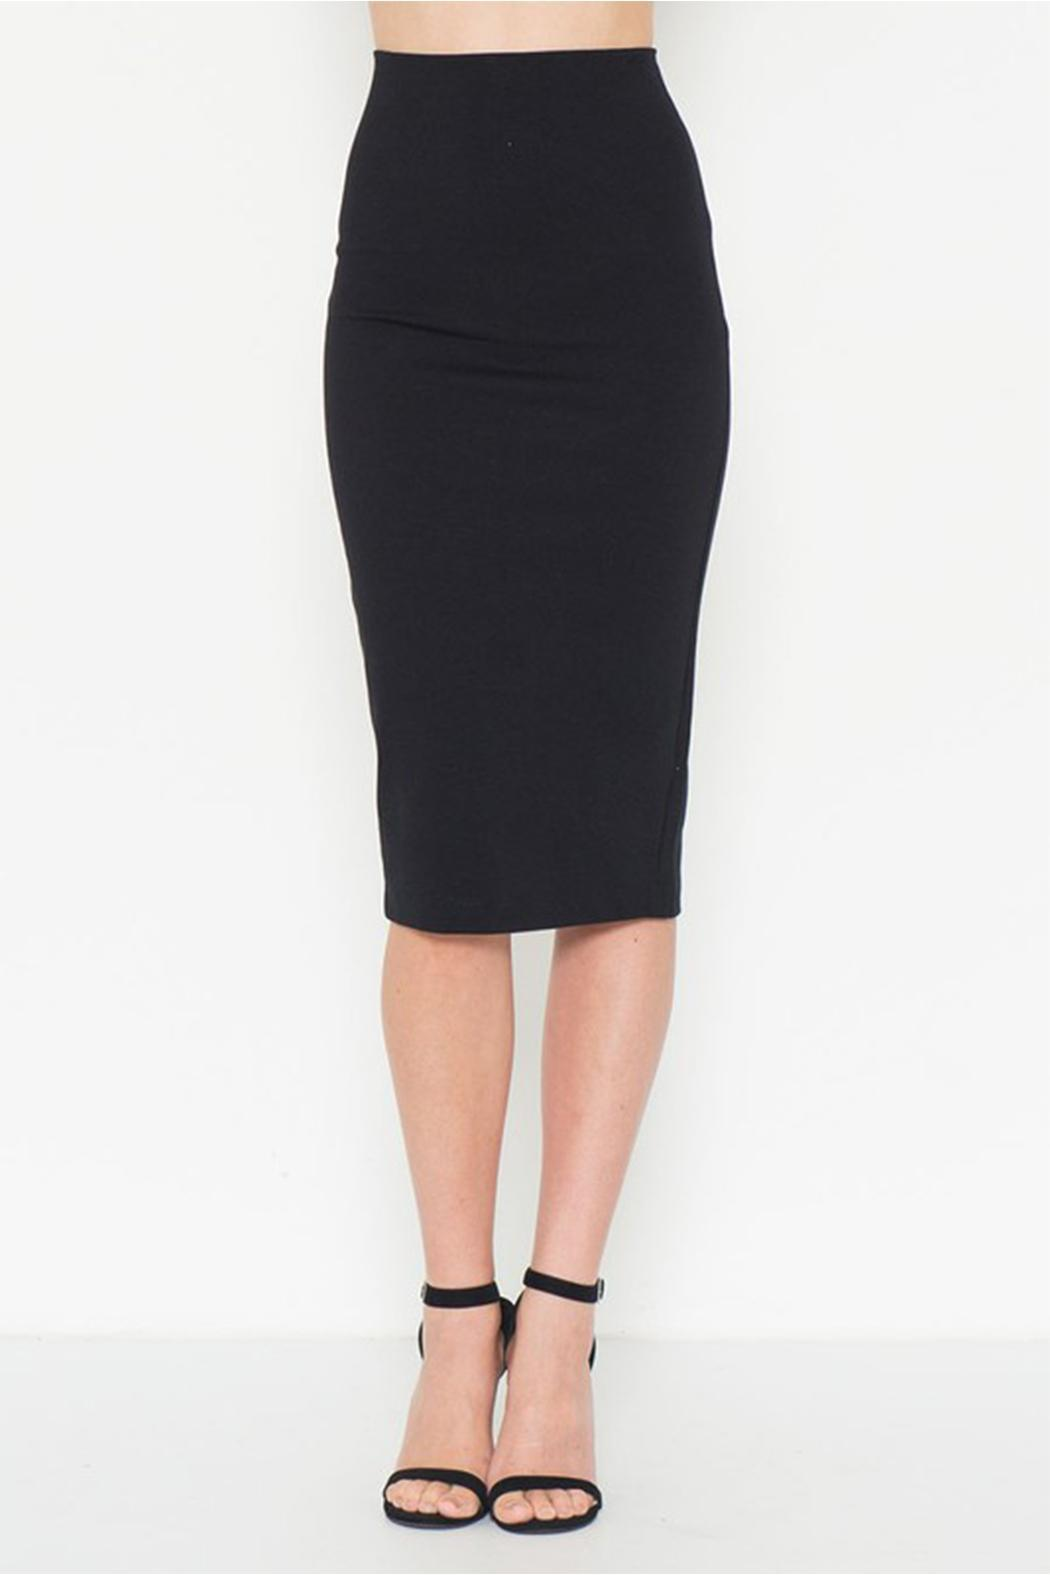 solemio midi pencil skirt from philadelphia by alana ferr